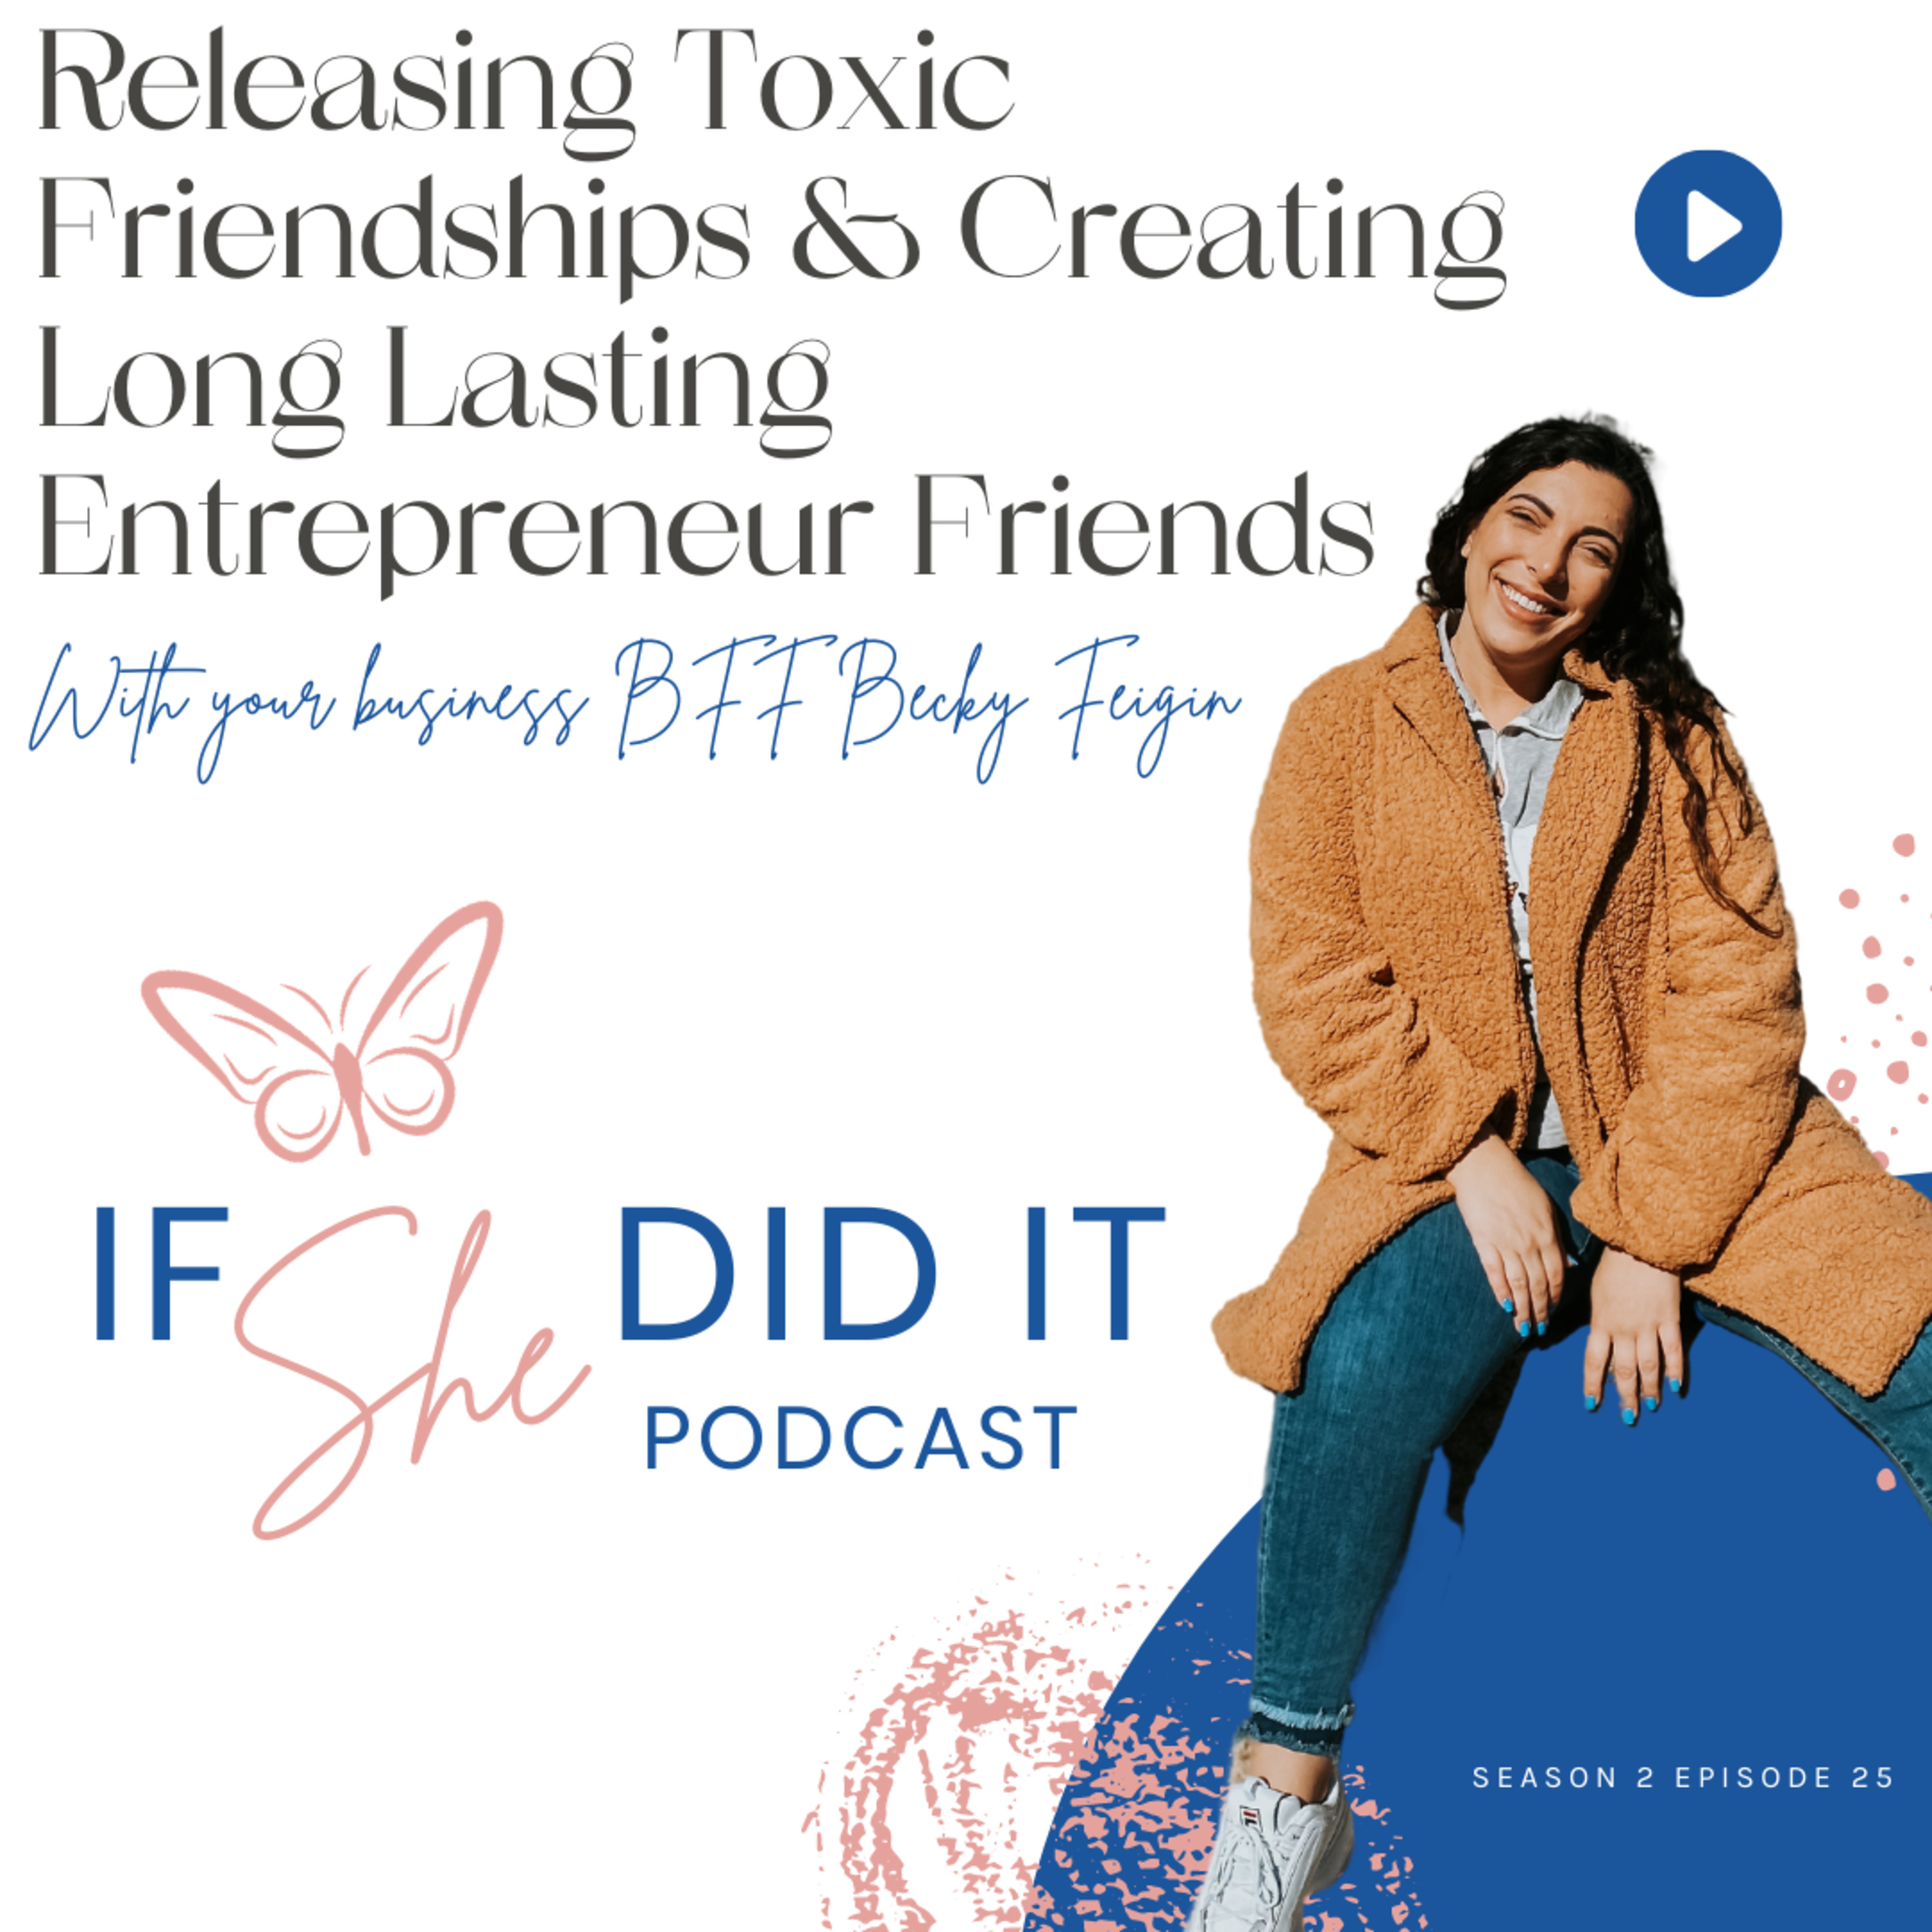 Releasing Toxic Friendships & Creating Long Lasting Entrepreneur Friends